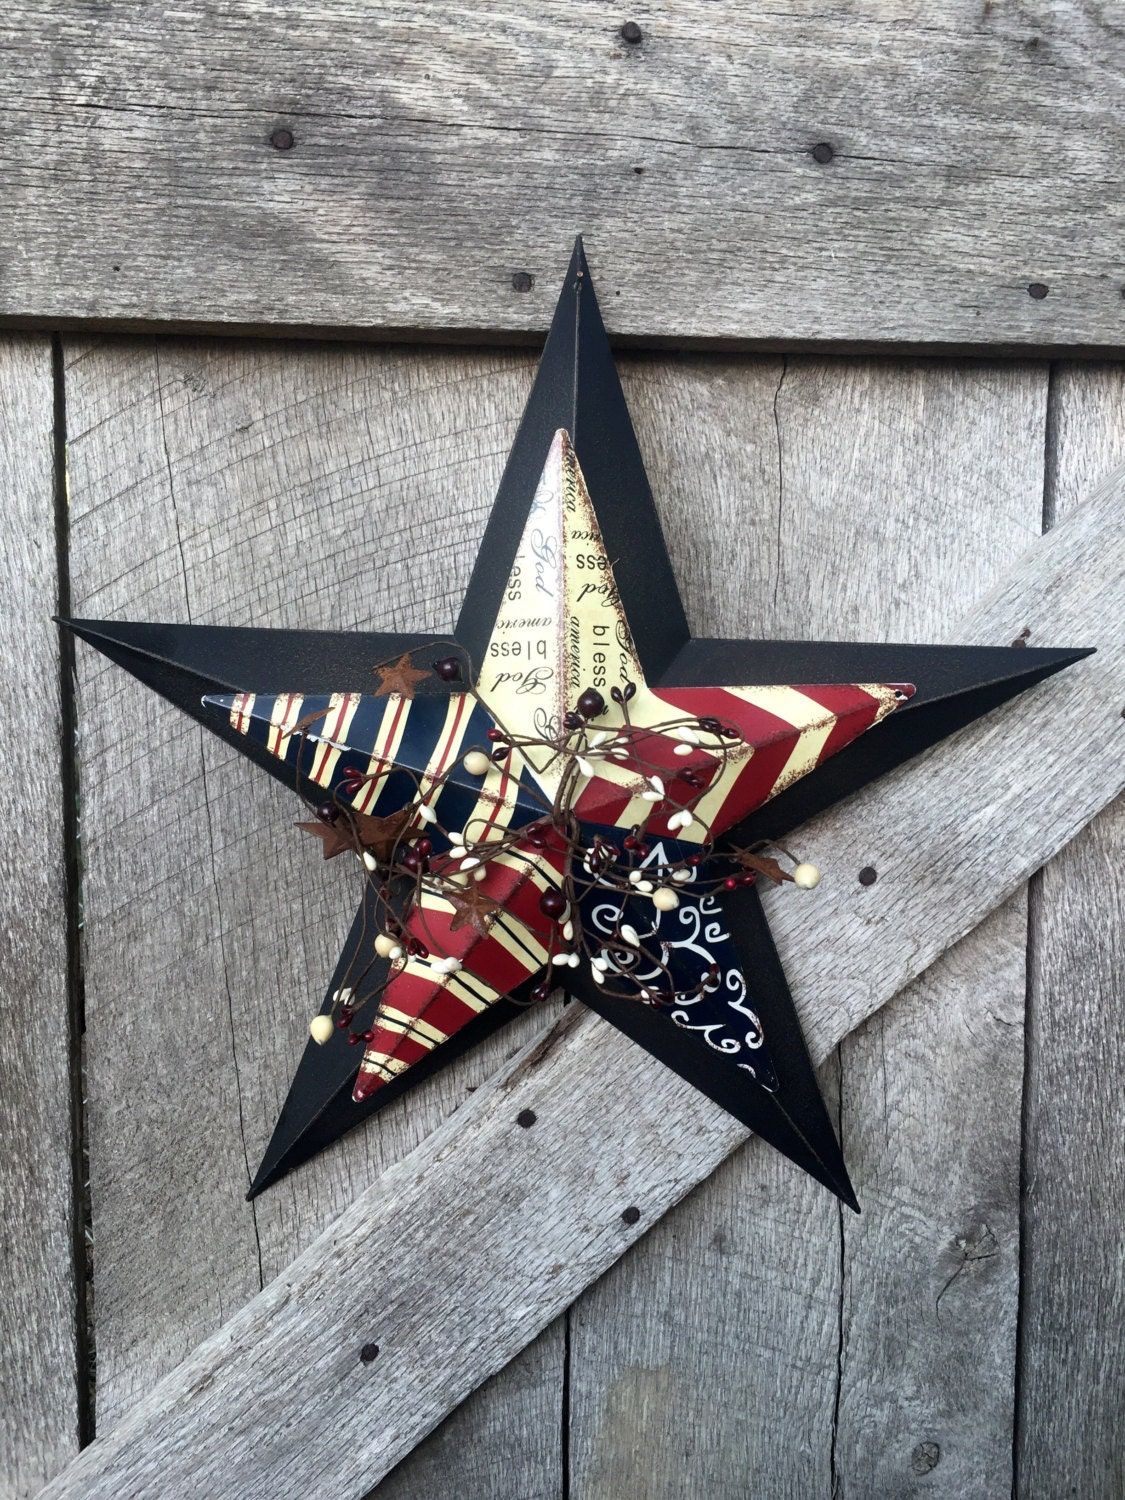 Barn Star Metal Star Decor Americana Barn Star Rustic Star